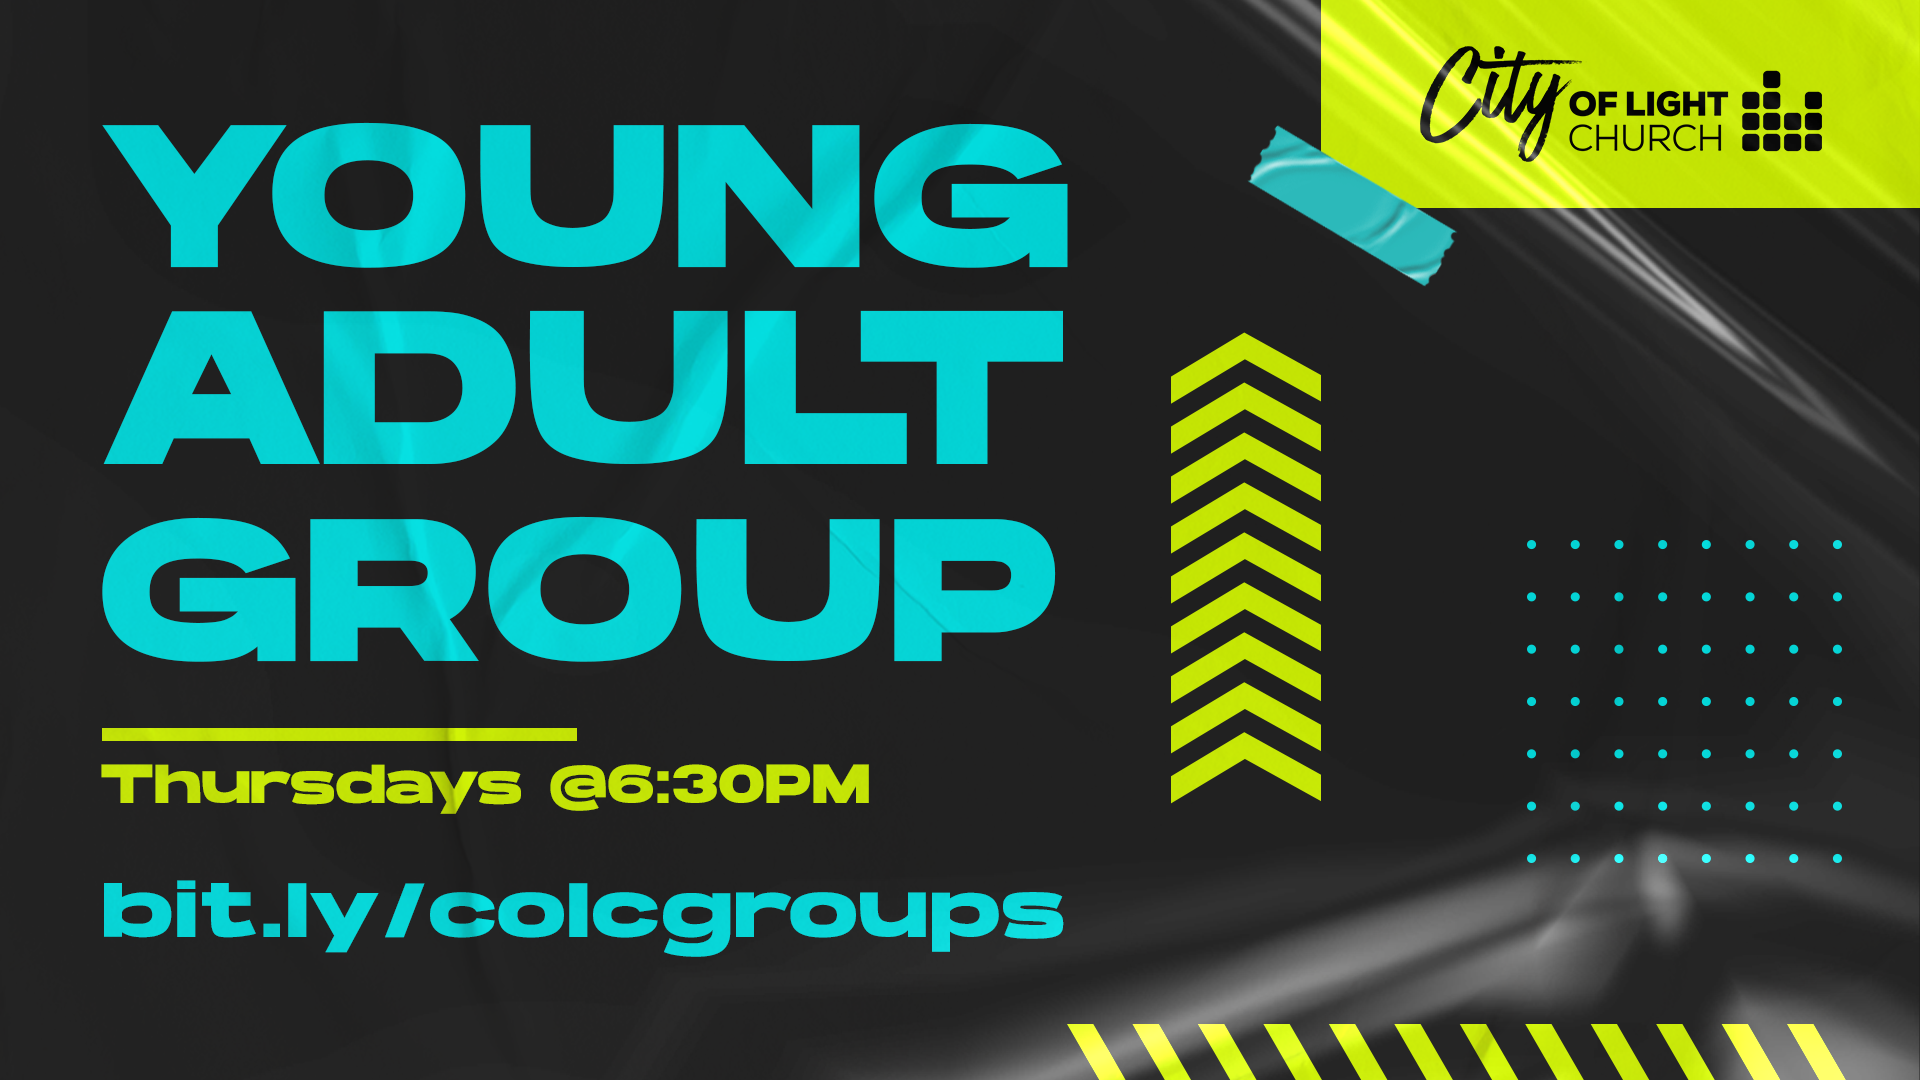 Young Adult Group | City of lights Church